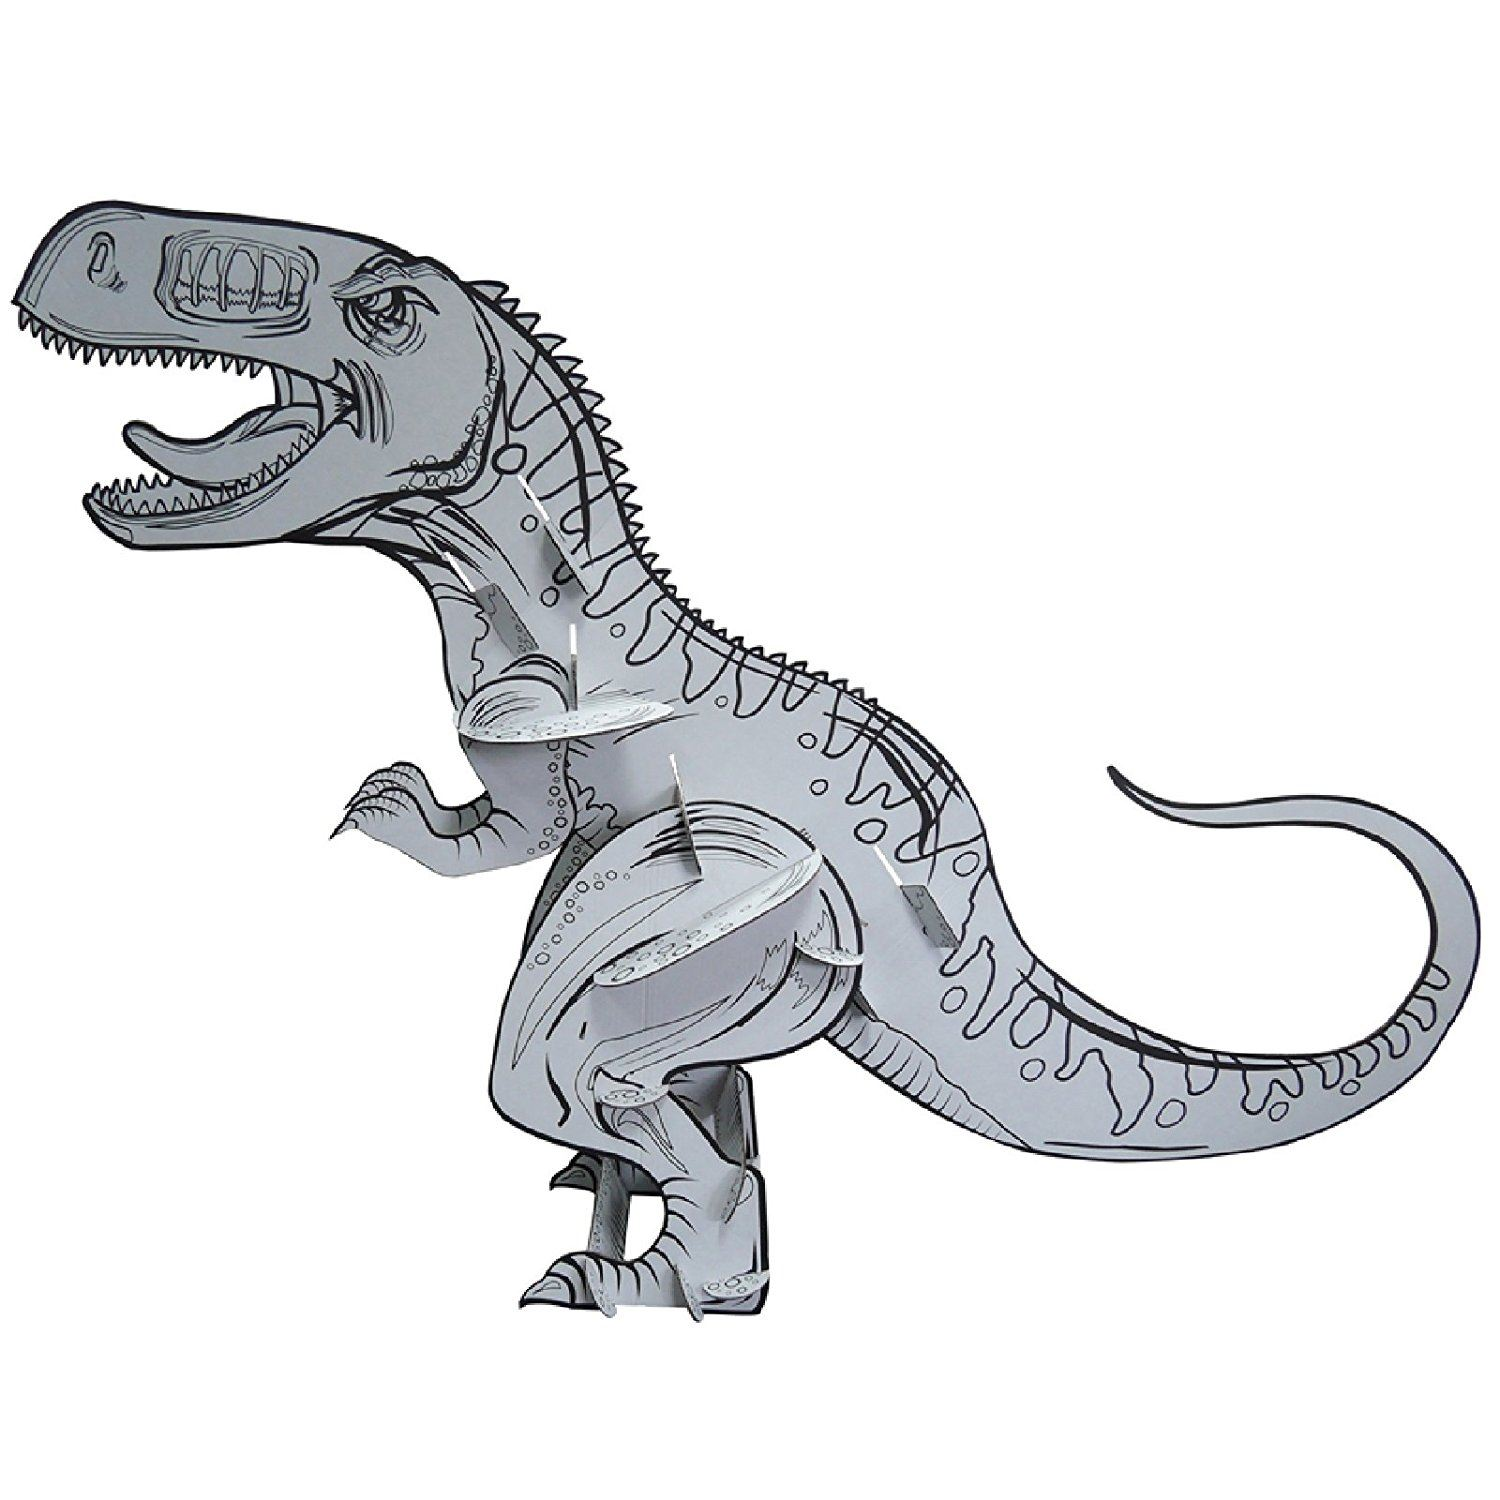 Colour Your Own Large Dinosaur Childrens Kids Cardboard T Rex Toy